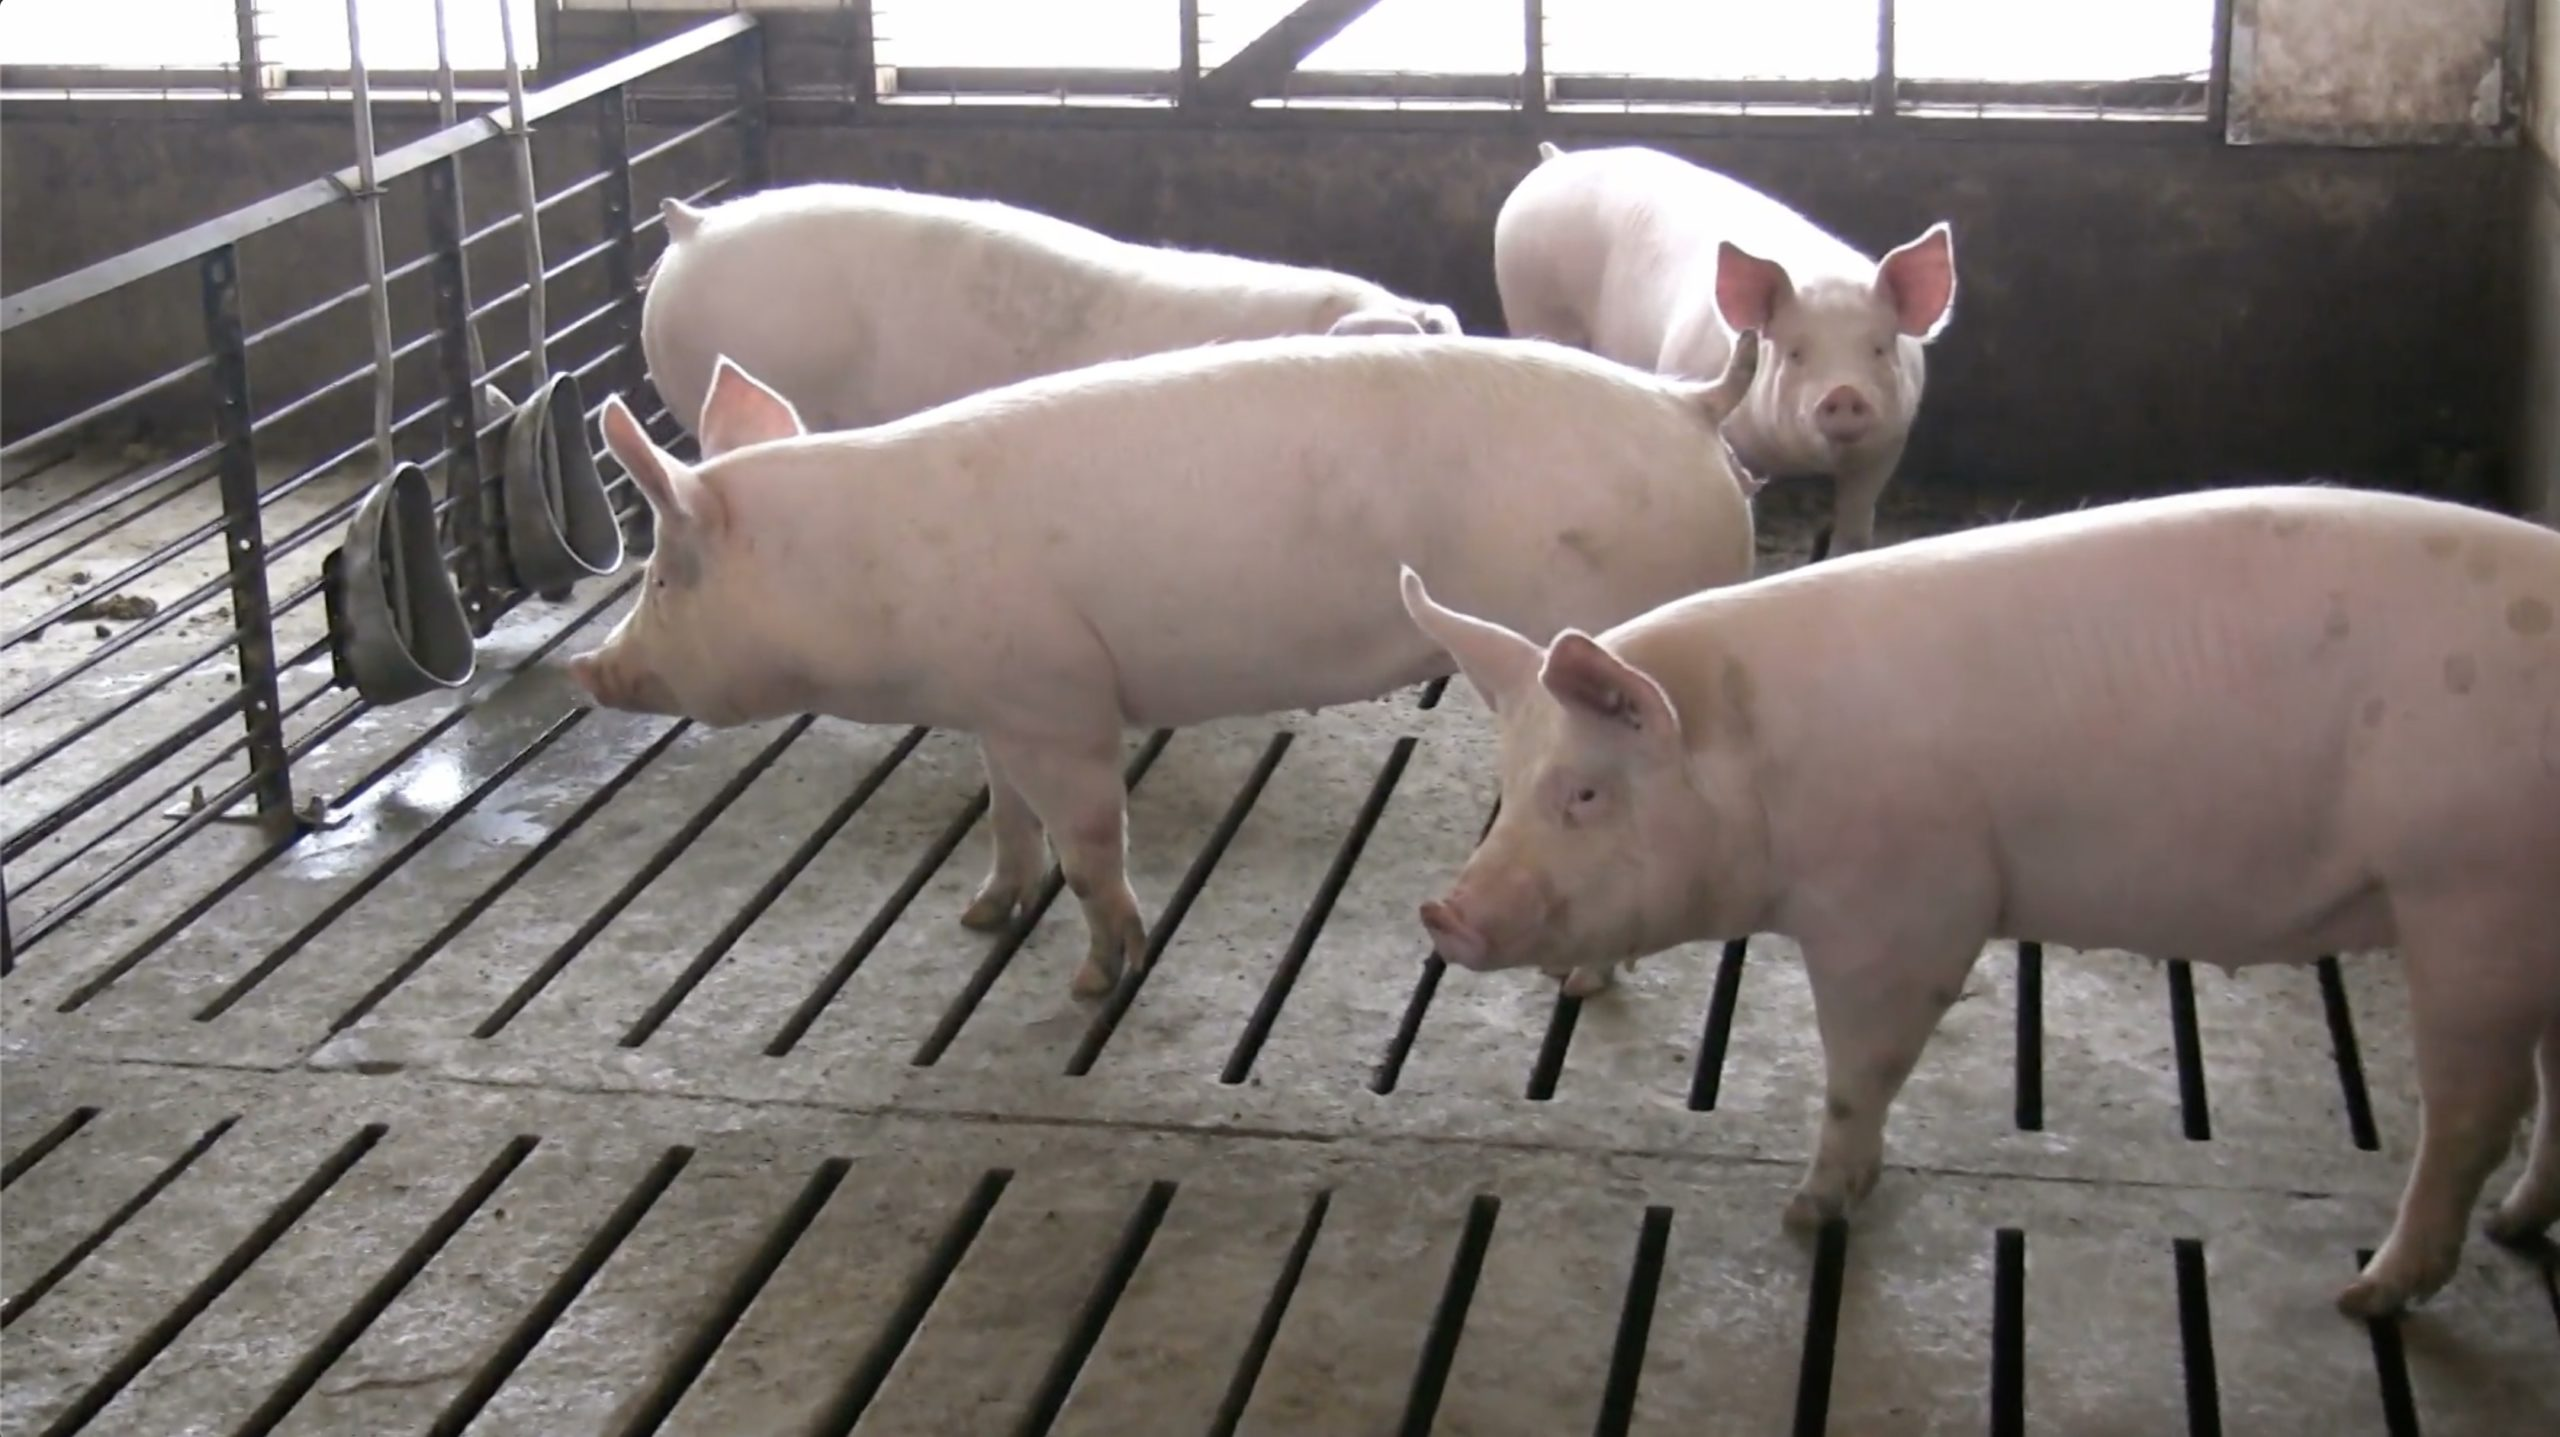 Pigs in a Concentrated Animal Feeding Operation or CAFO